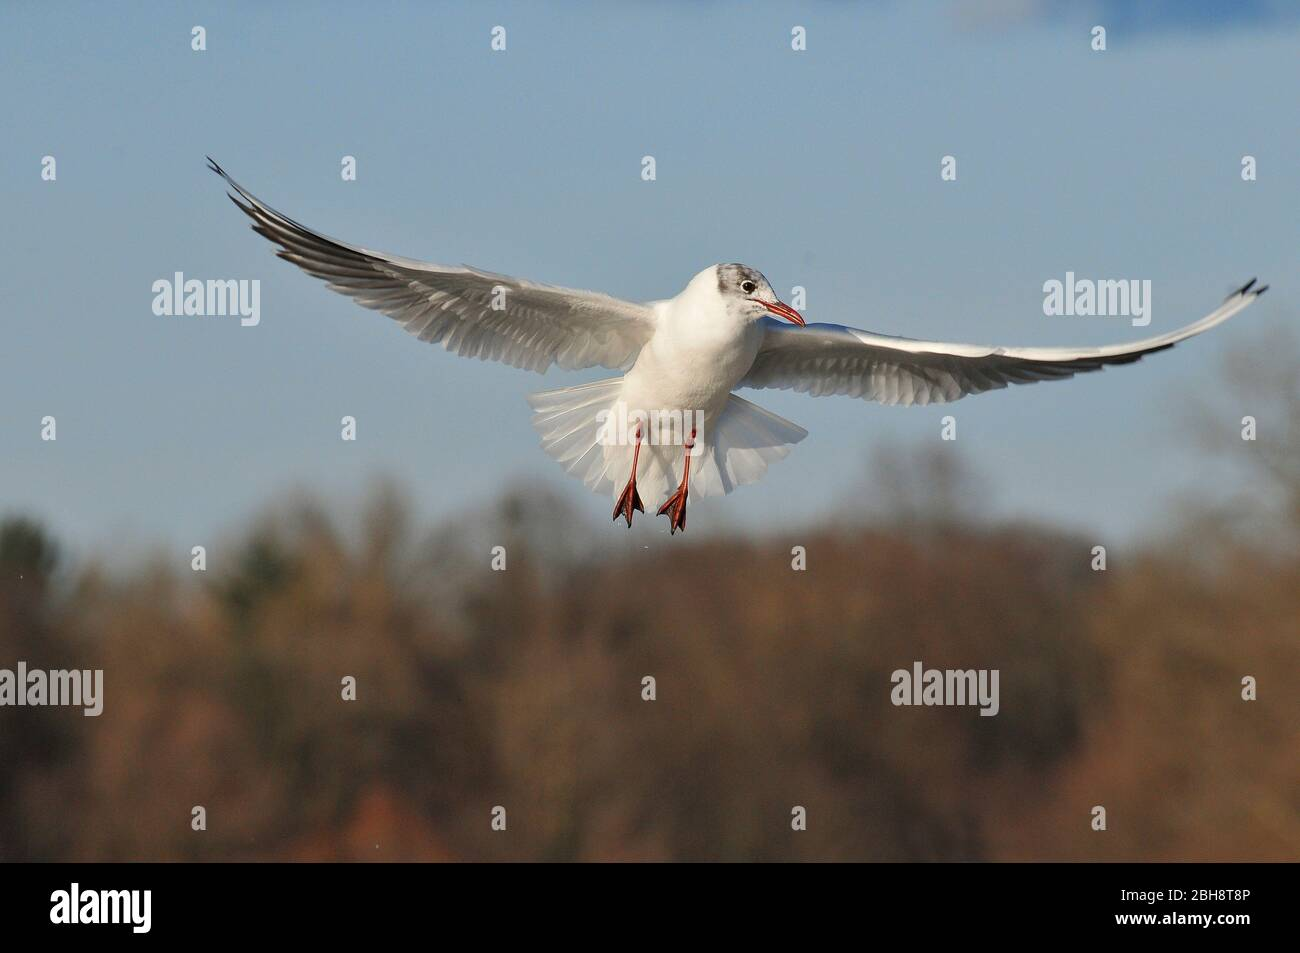 Black-headed Gull, Chroicocephalus ridibundus, Larus ridibundus, at the river Isar, Munich, Bavaria, Germany Stock Photo